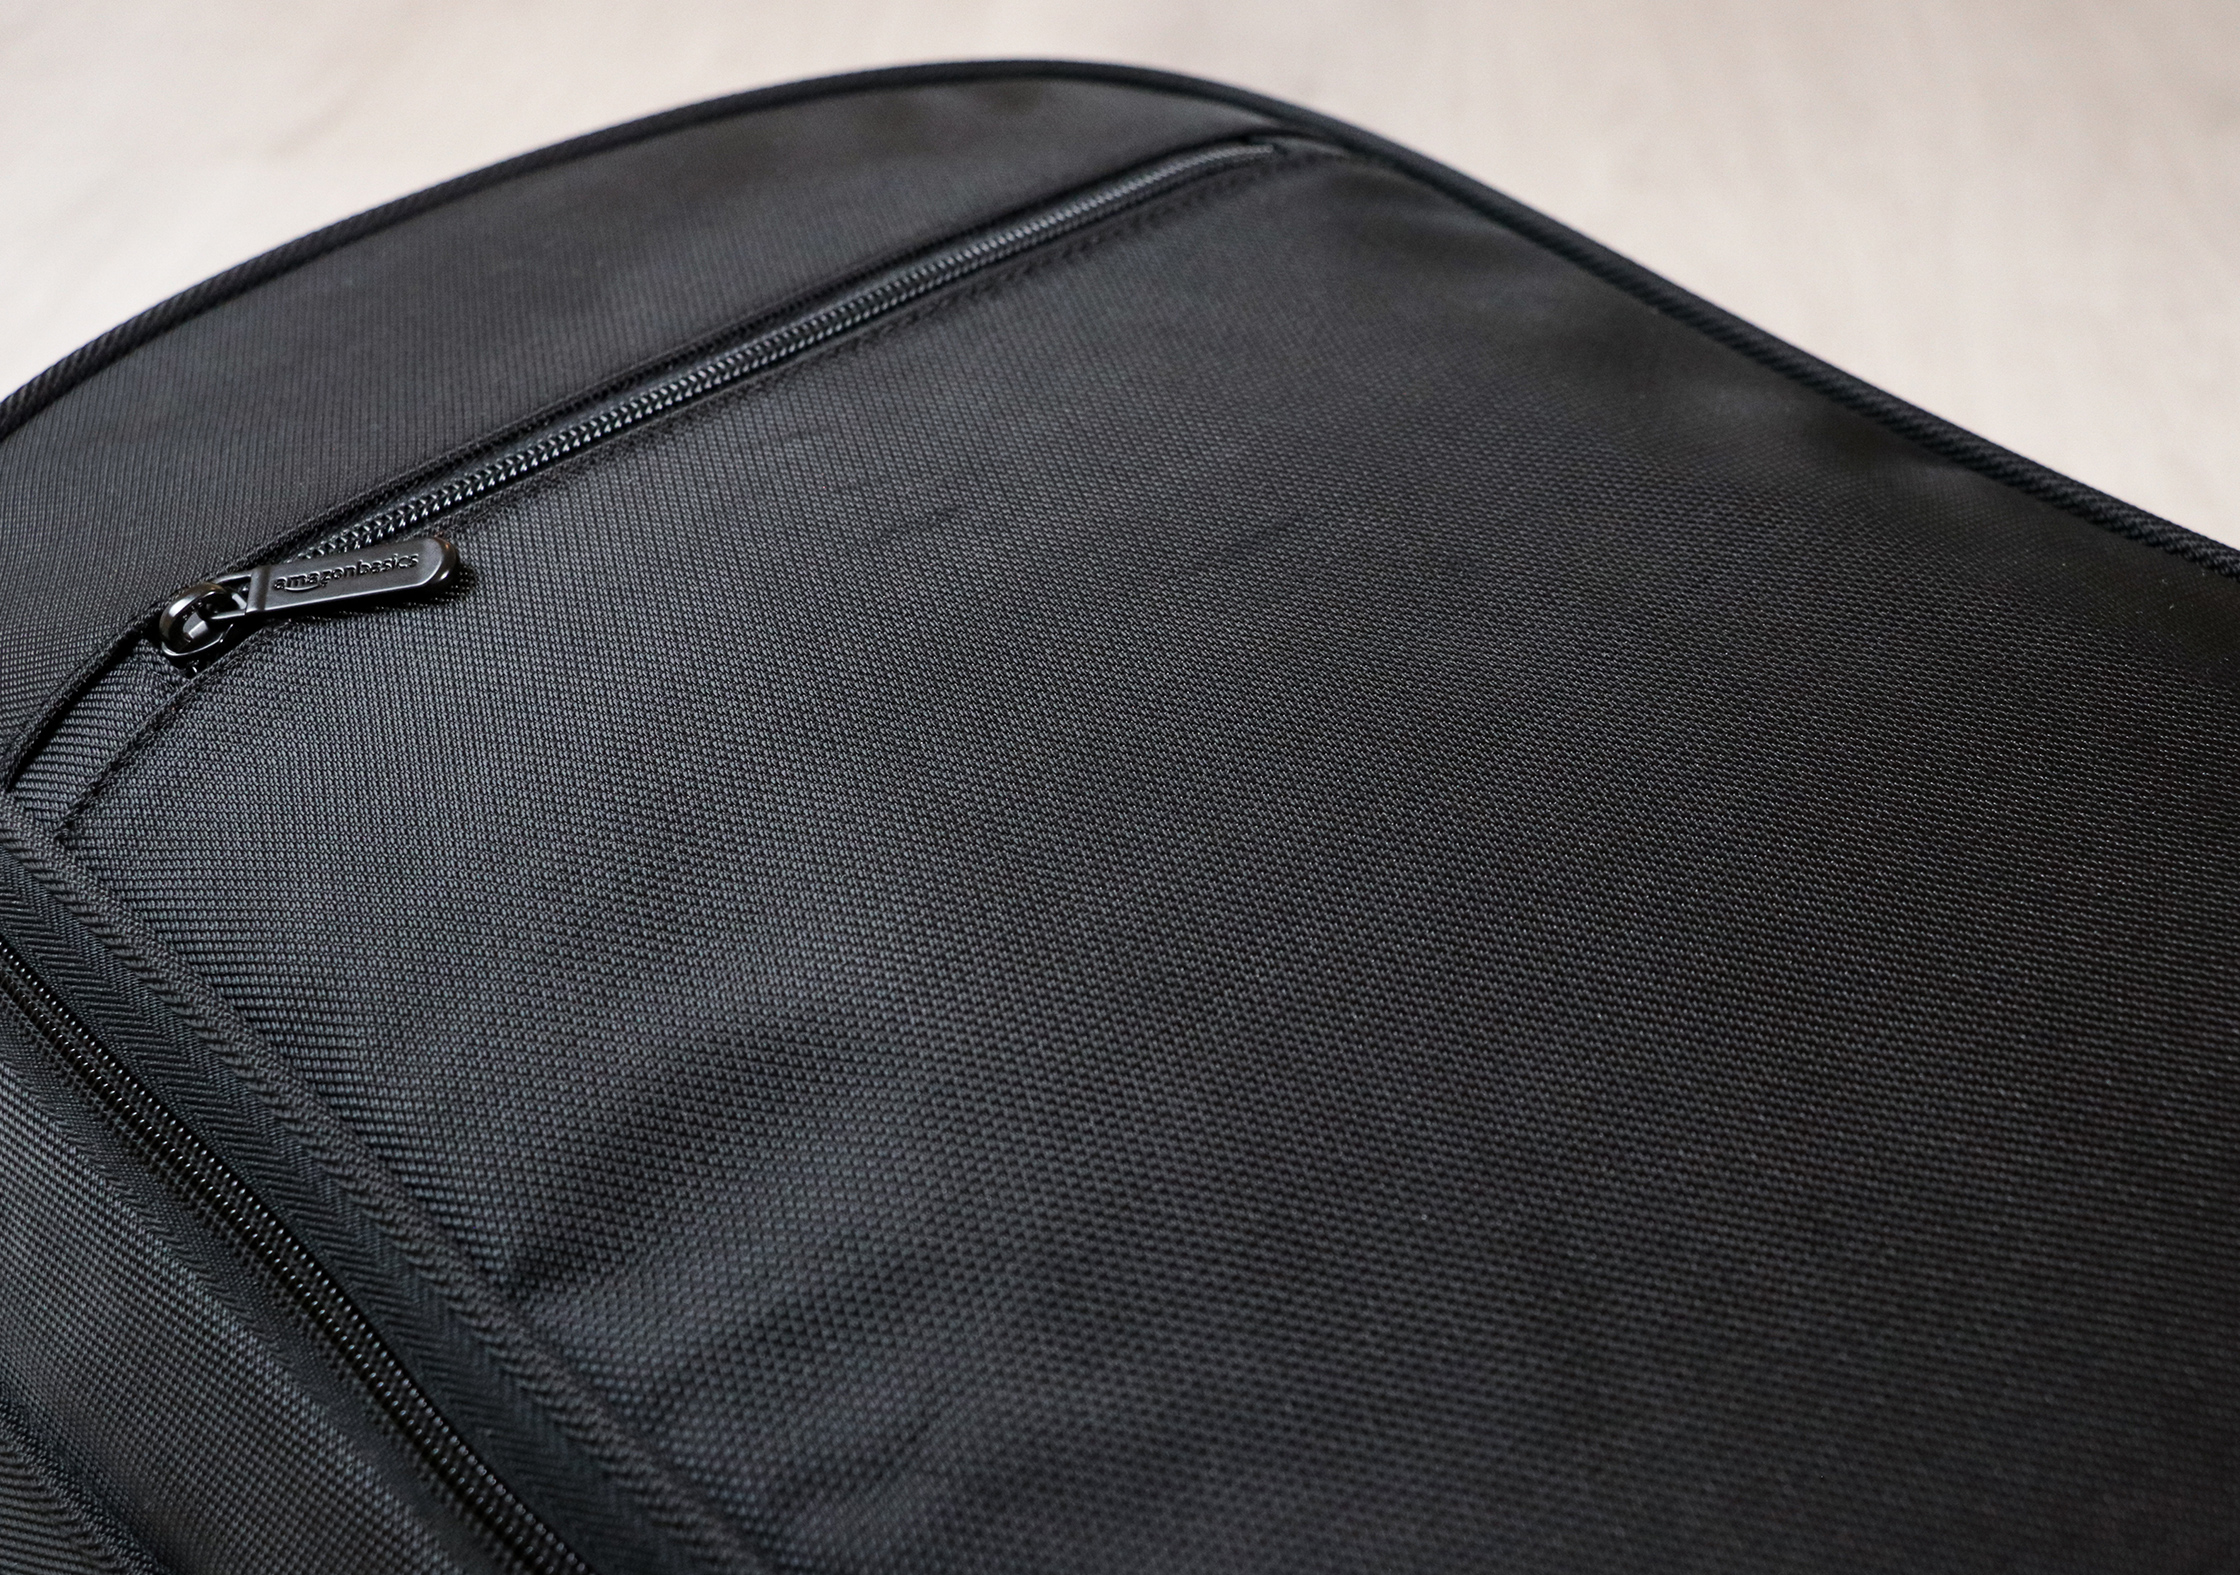 AmazonBasics Carry-On Travel Backpack Polyester Material